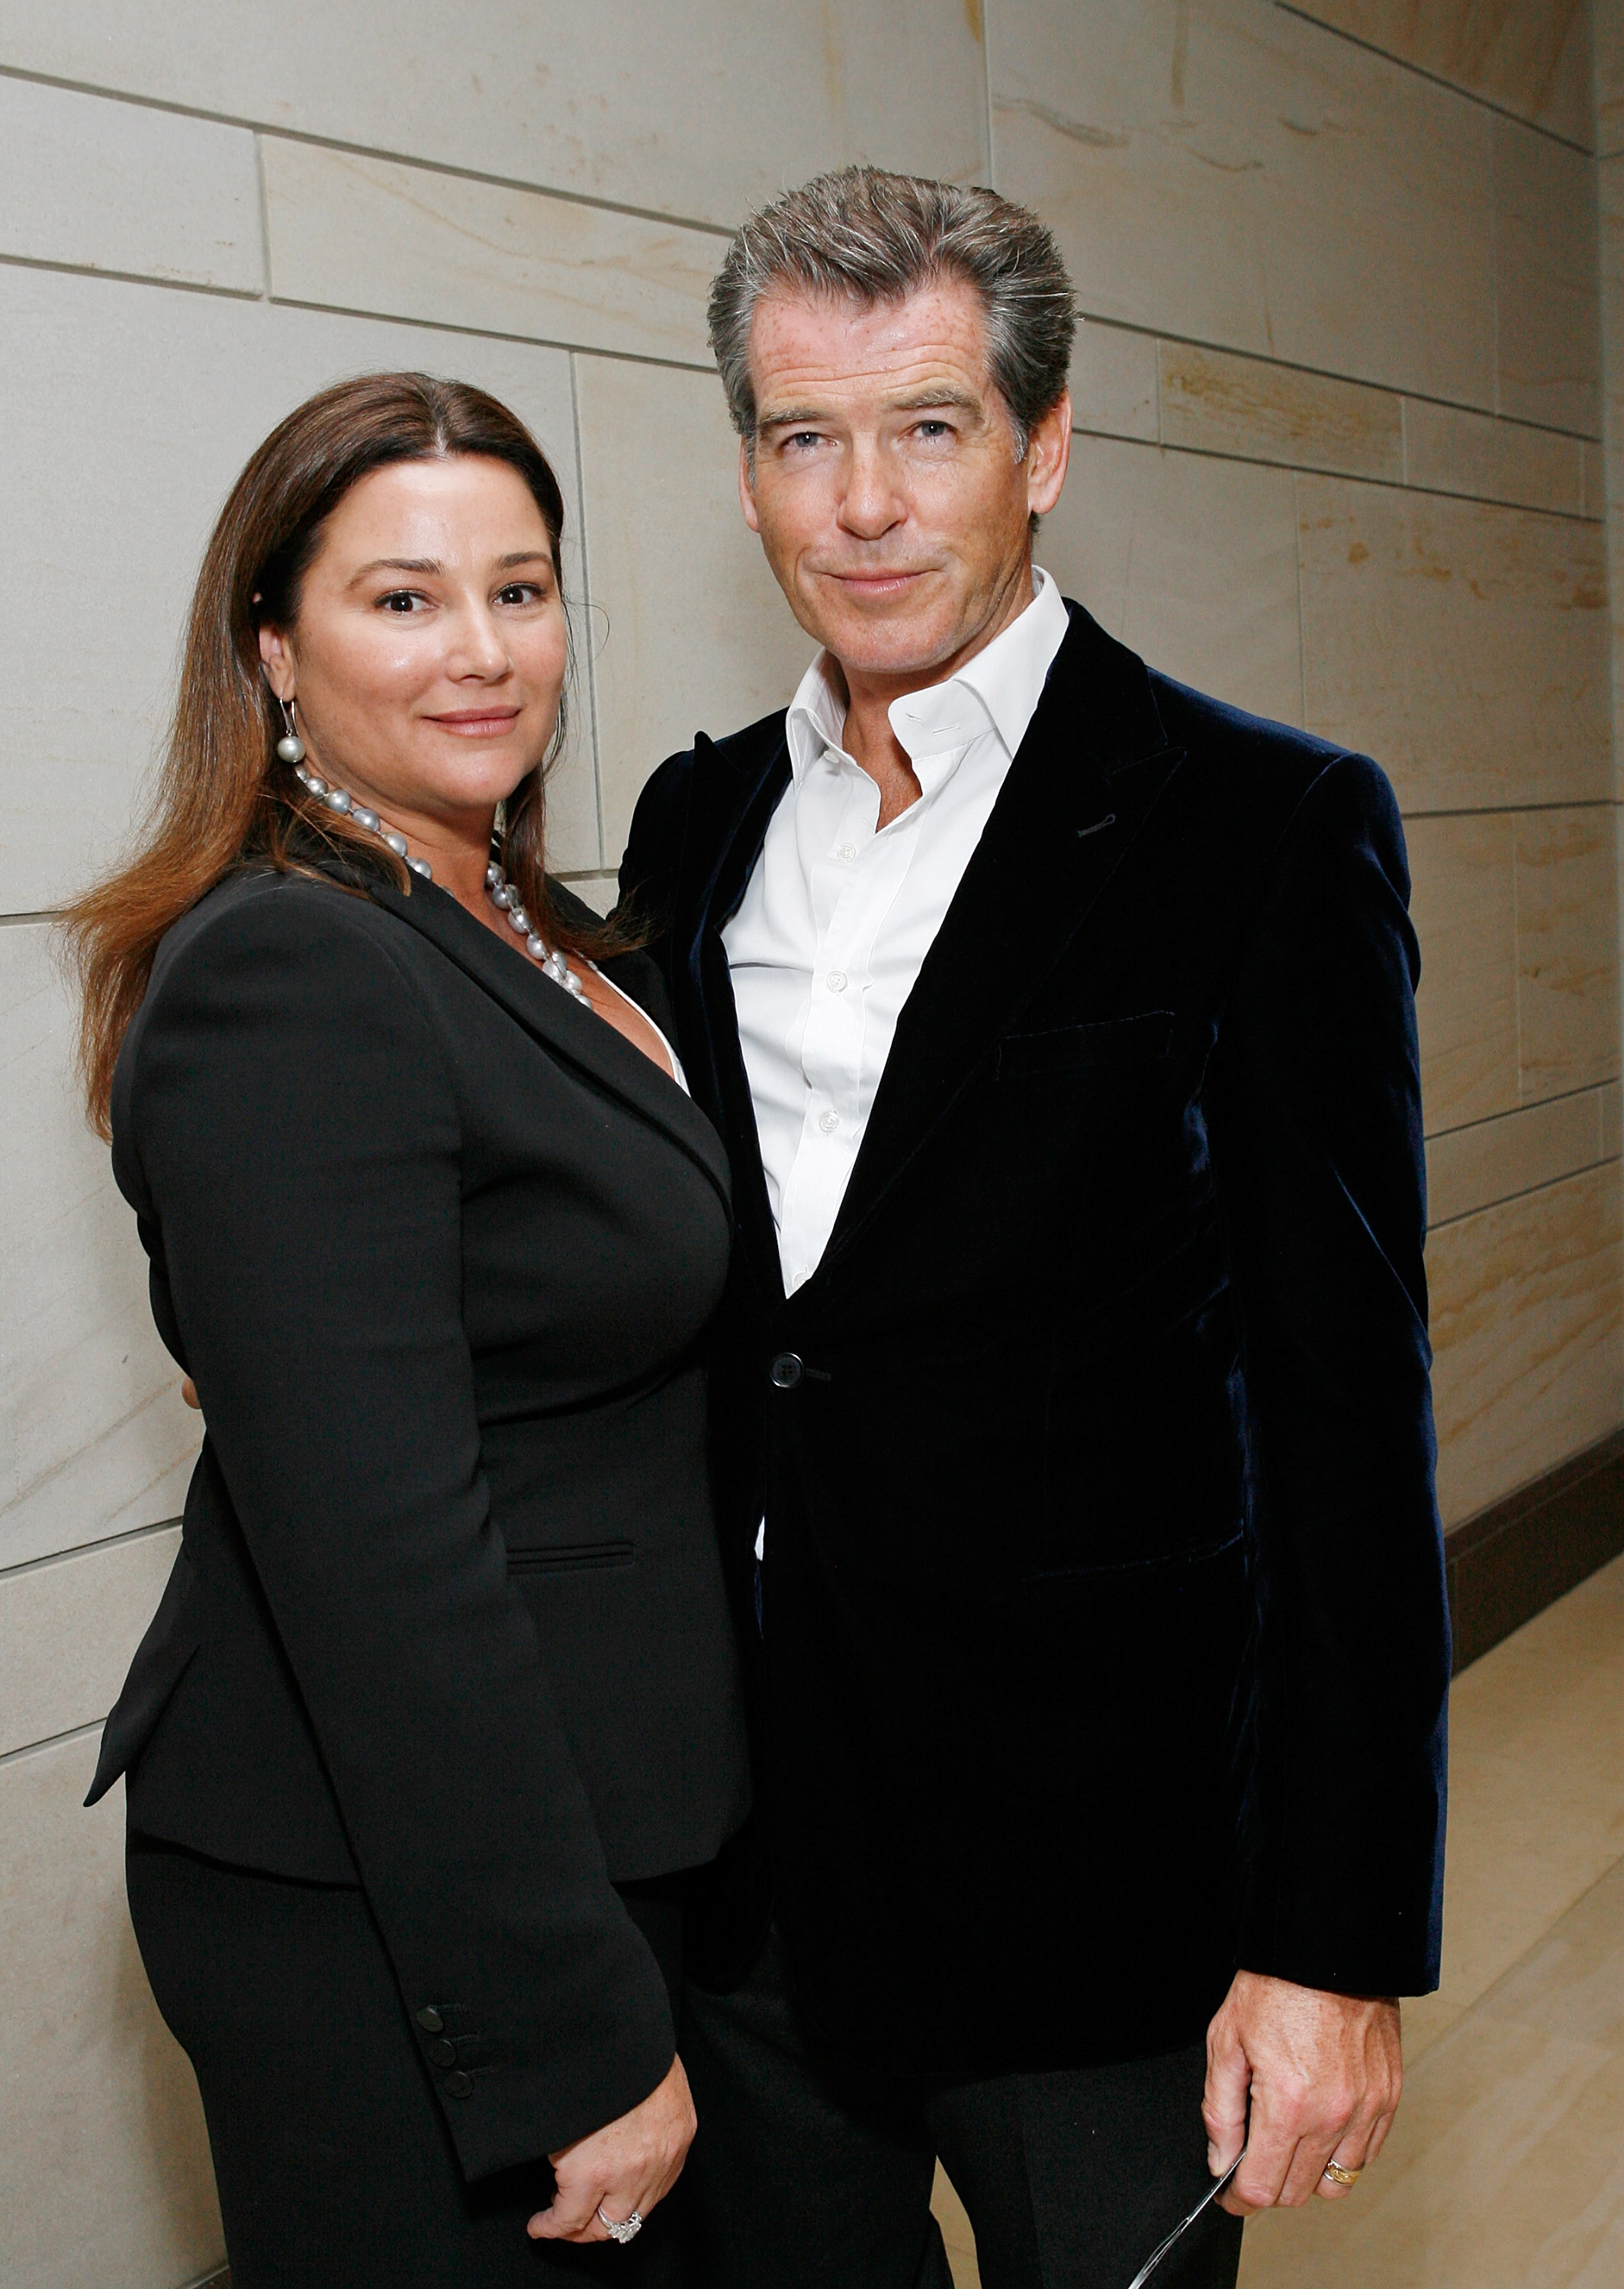 Honorary chairs Keely Brosnan and actor Pierce Brosnan attend the International Fund For Animal Welfare's Global Whale Conservation Congressional Reception at the U.S. Capital Visitor Center Atrium in Washington, D.C., on May 19, 2009.